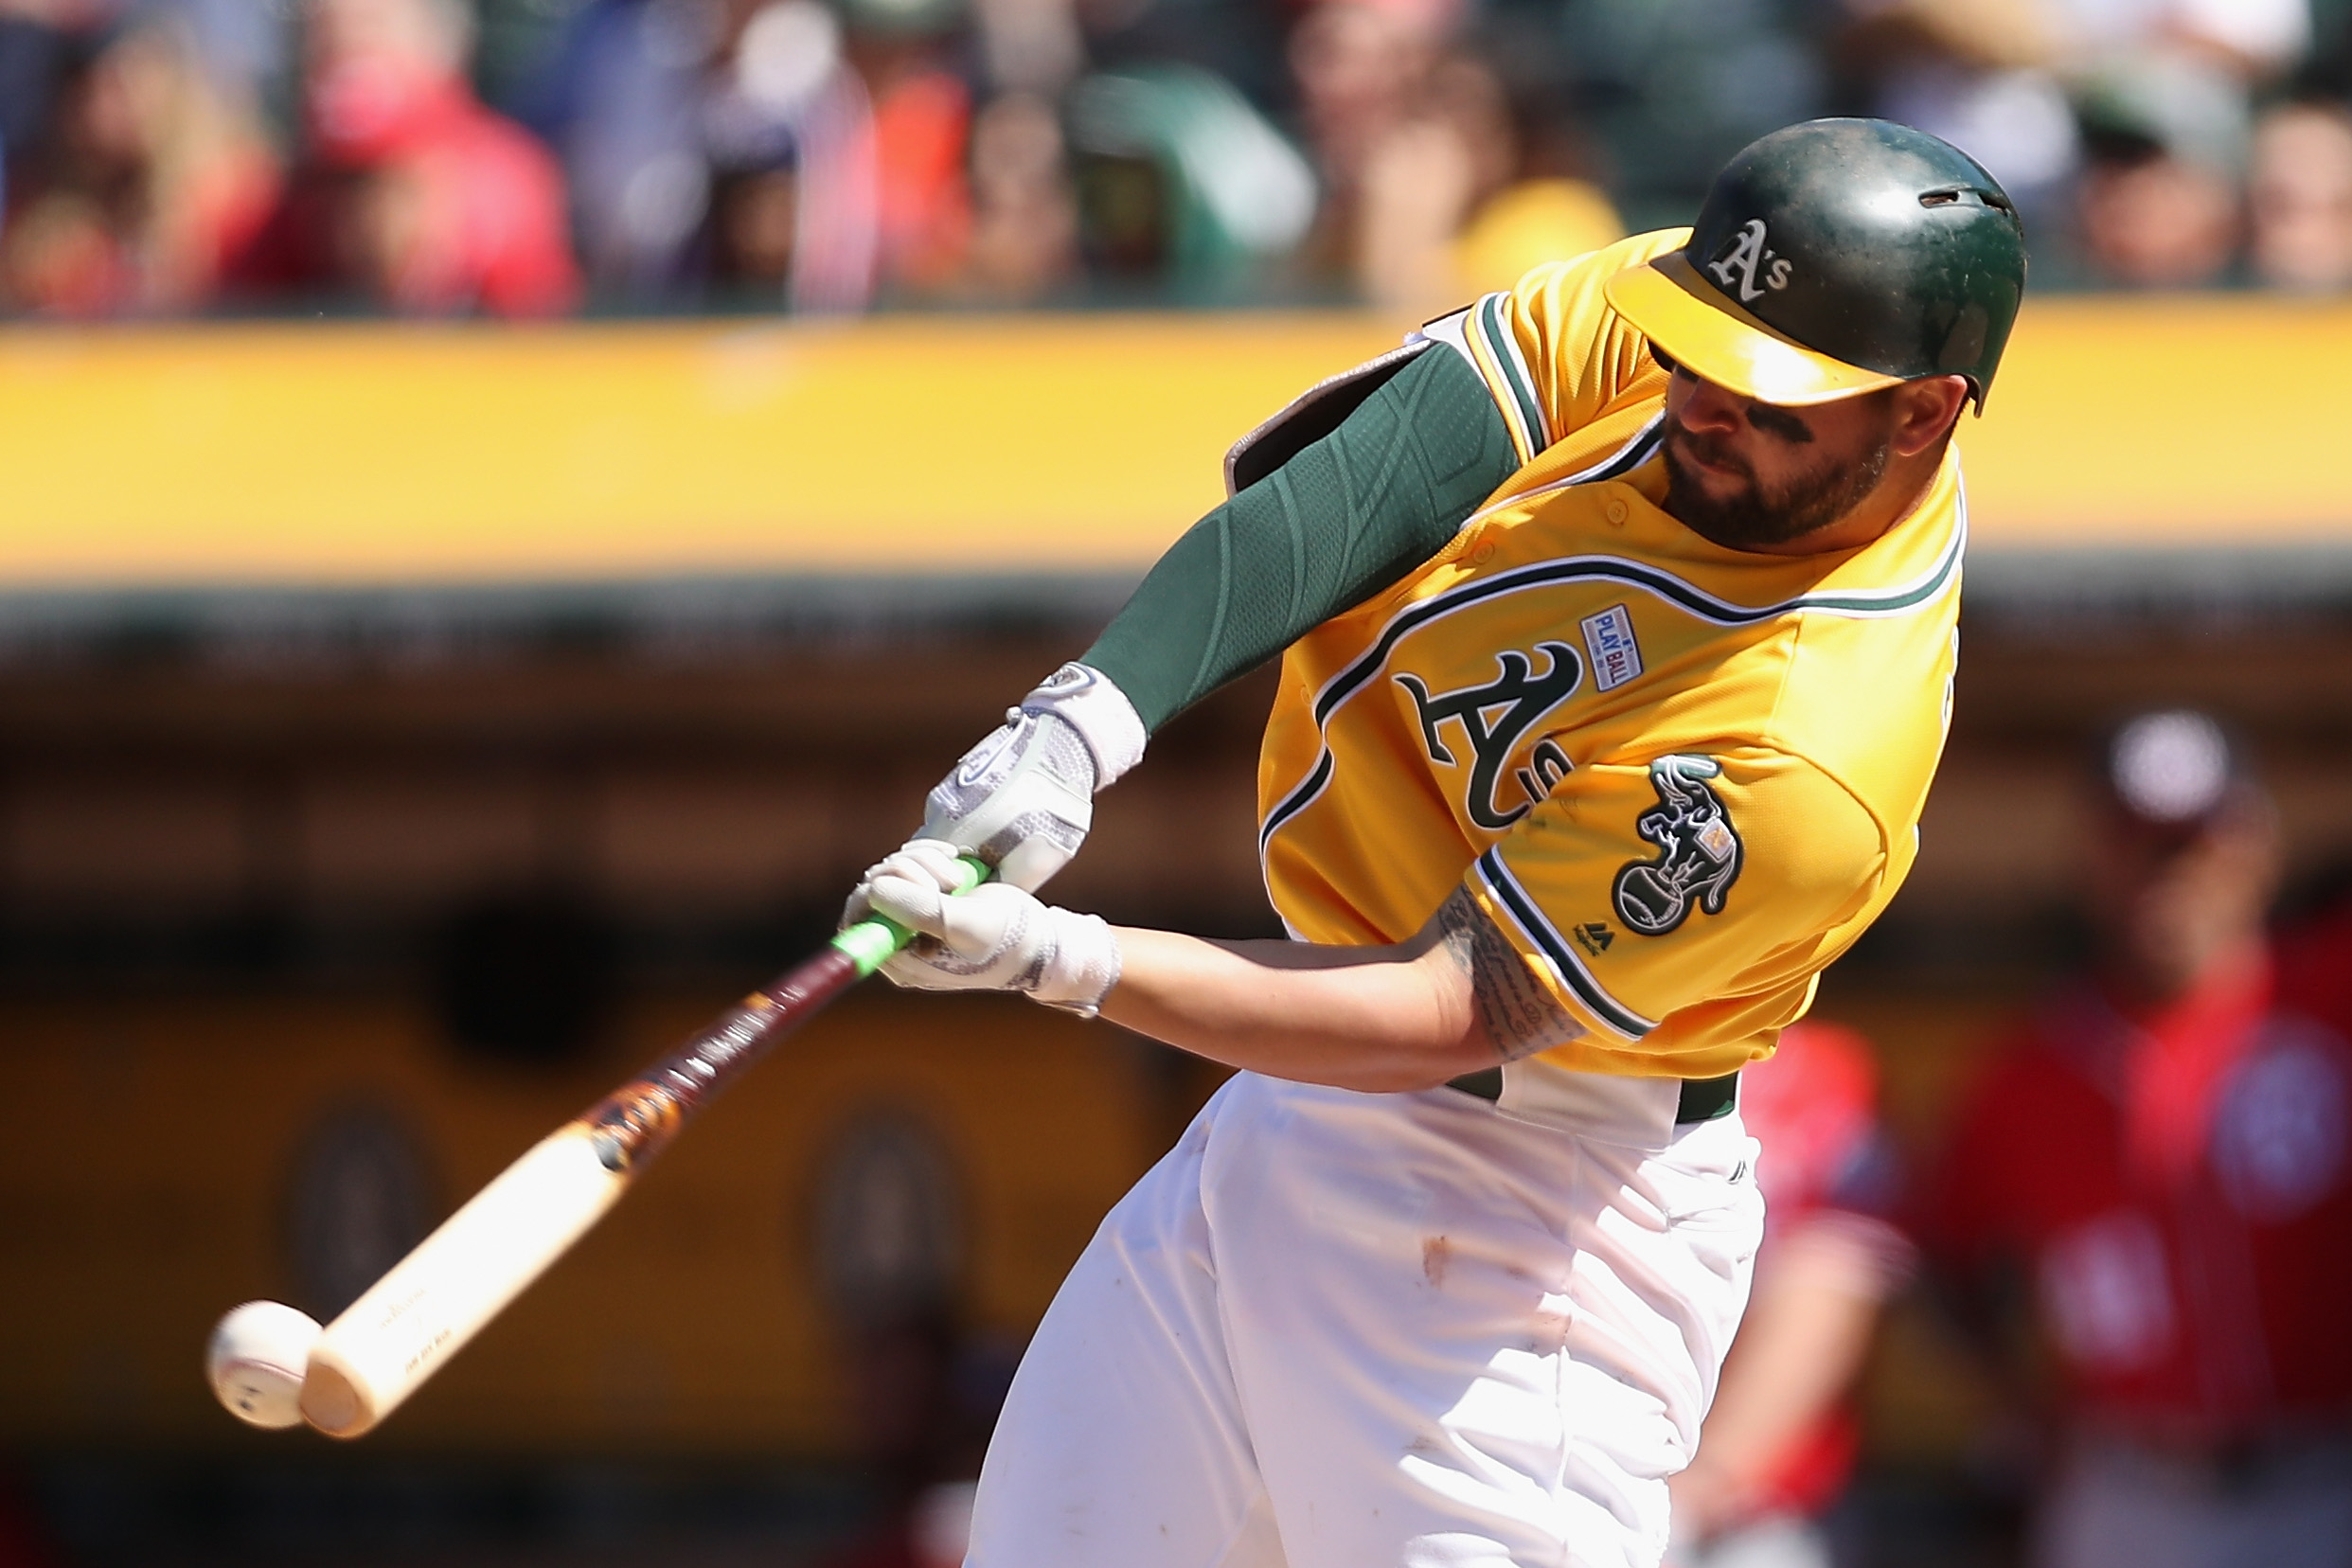 Yankees Trade Rumors: Yonder Alonso Talks with Athletics Reported